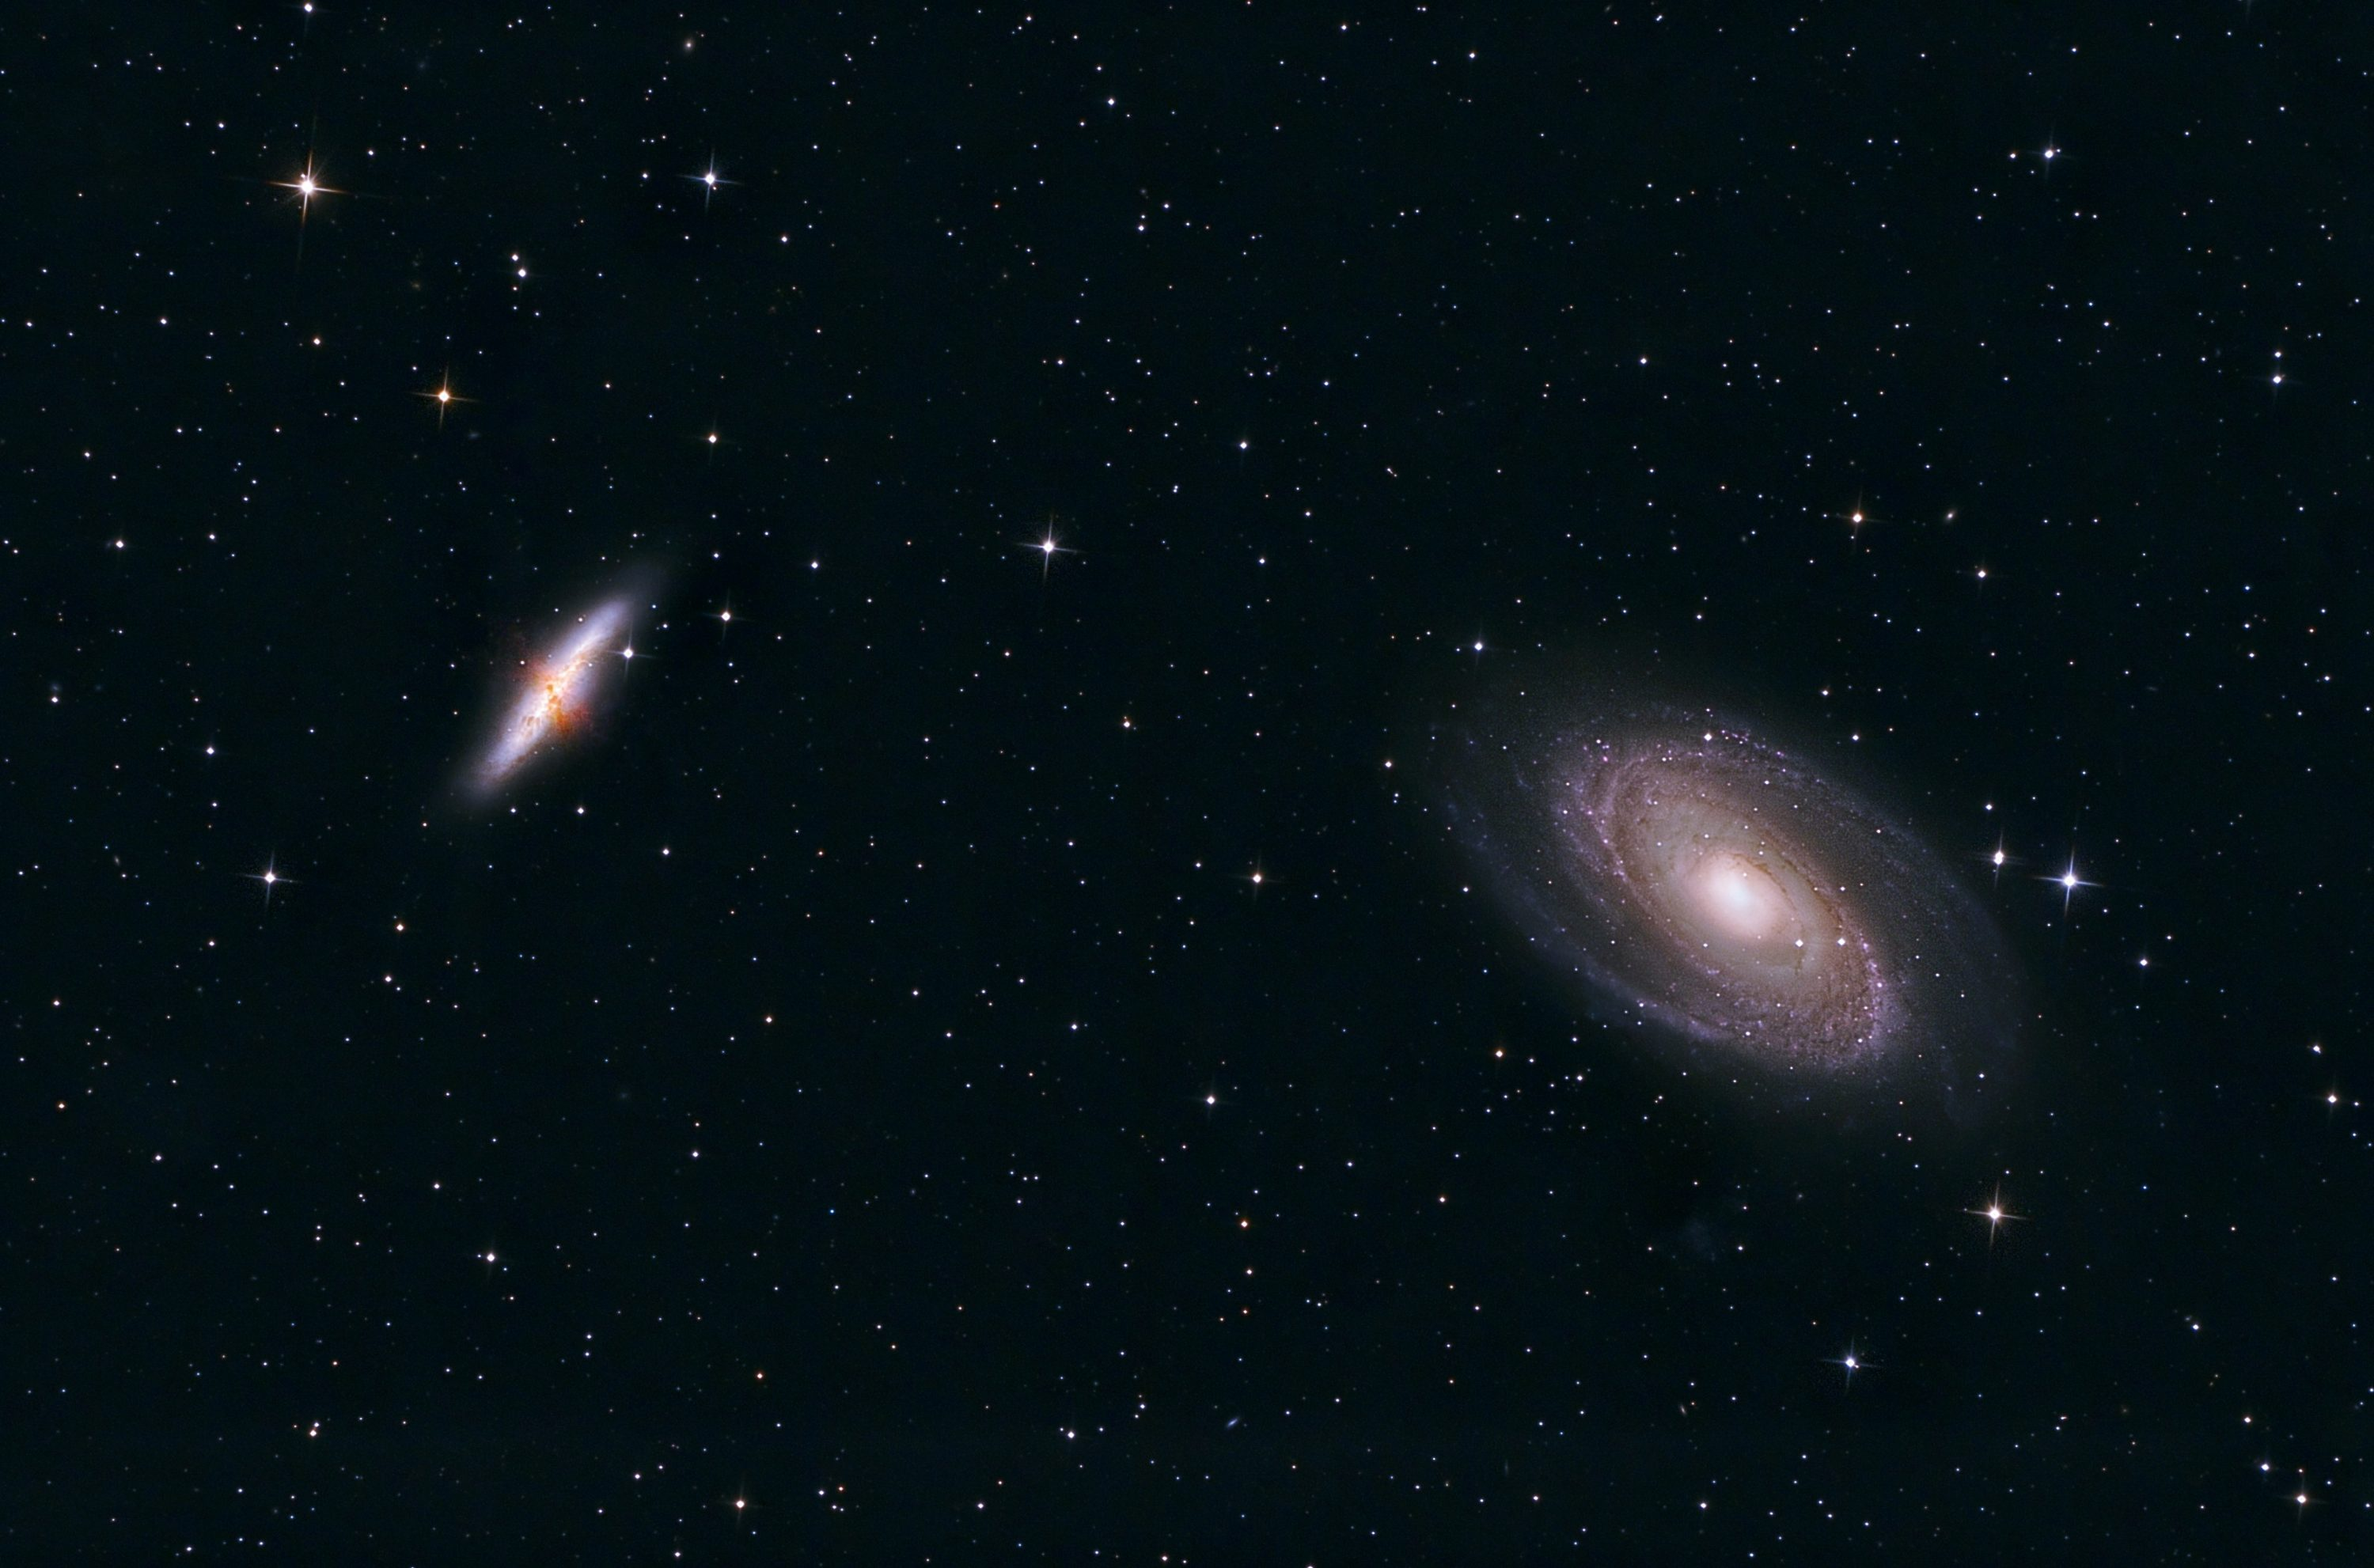 M81 and M82 galaxies. Shawn Nielsen 2013